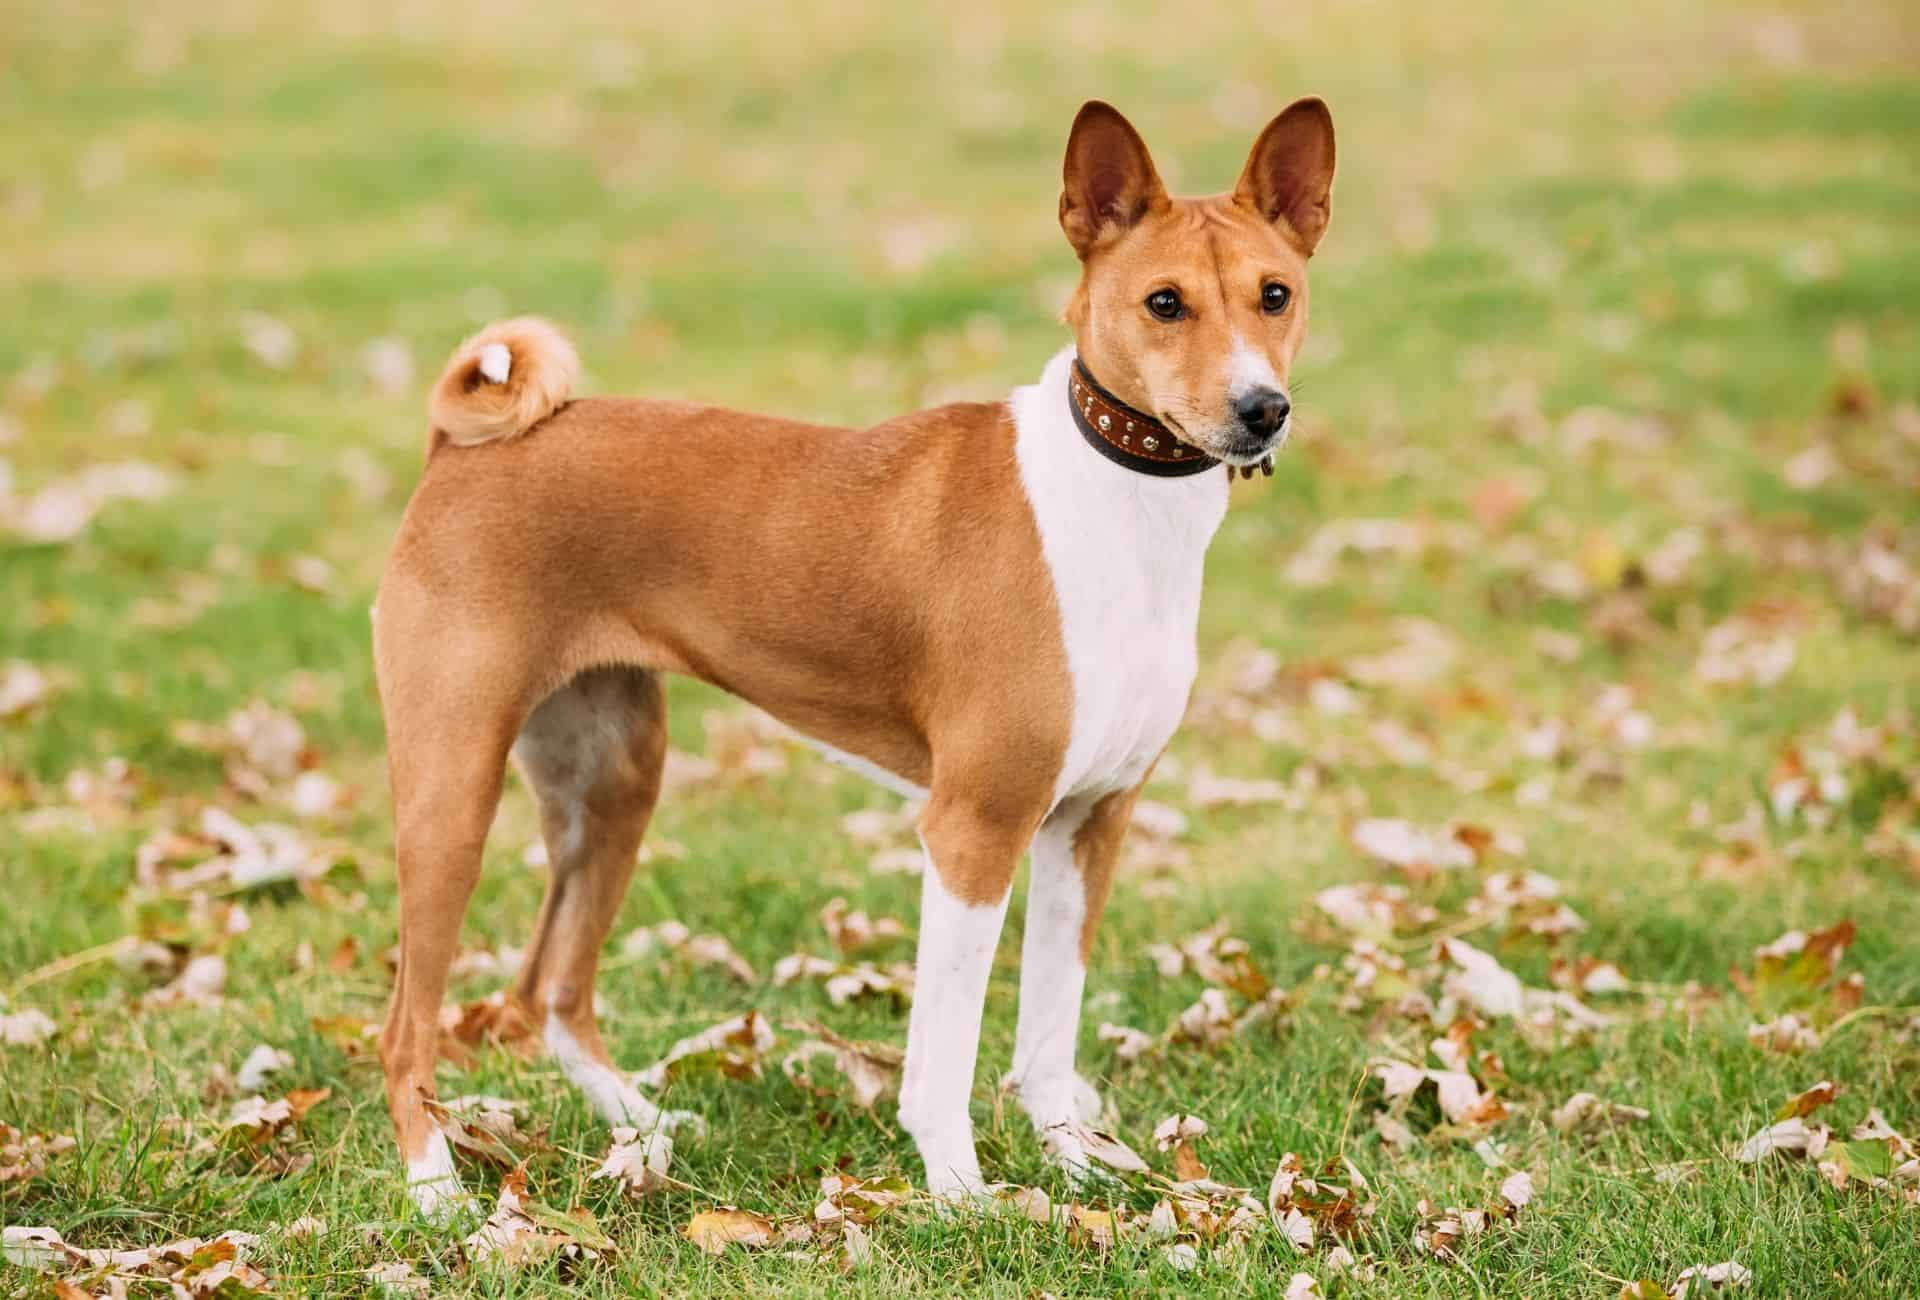 Adult Basenji standing on grass and looking at the camera.